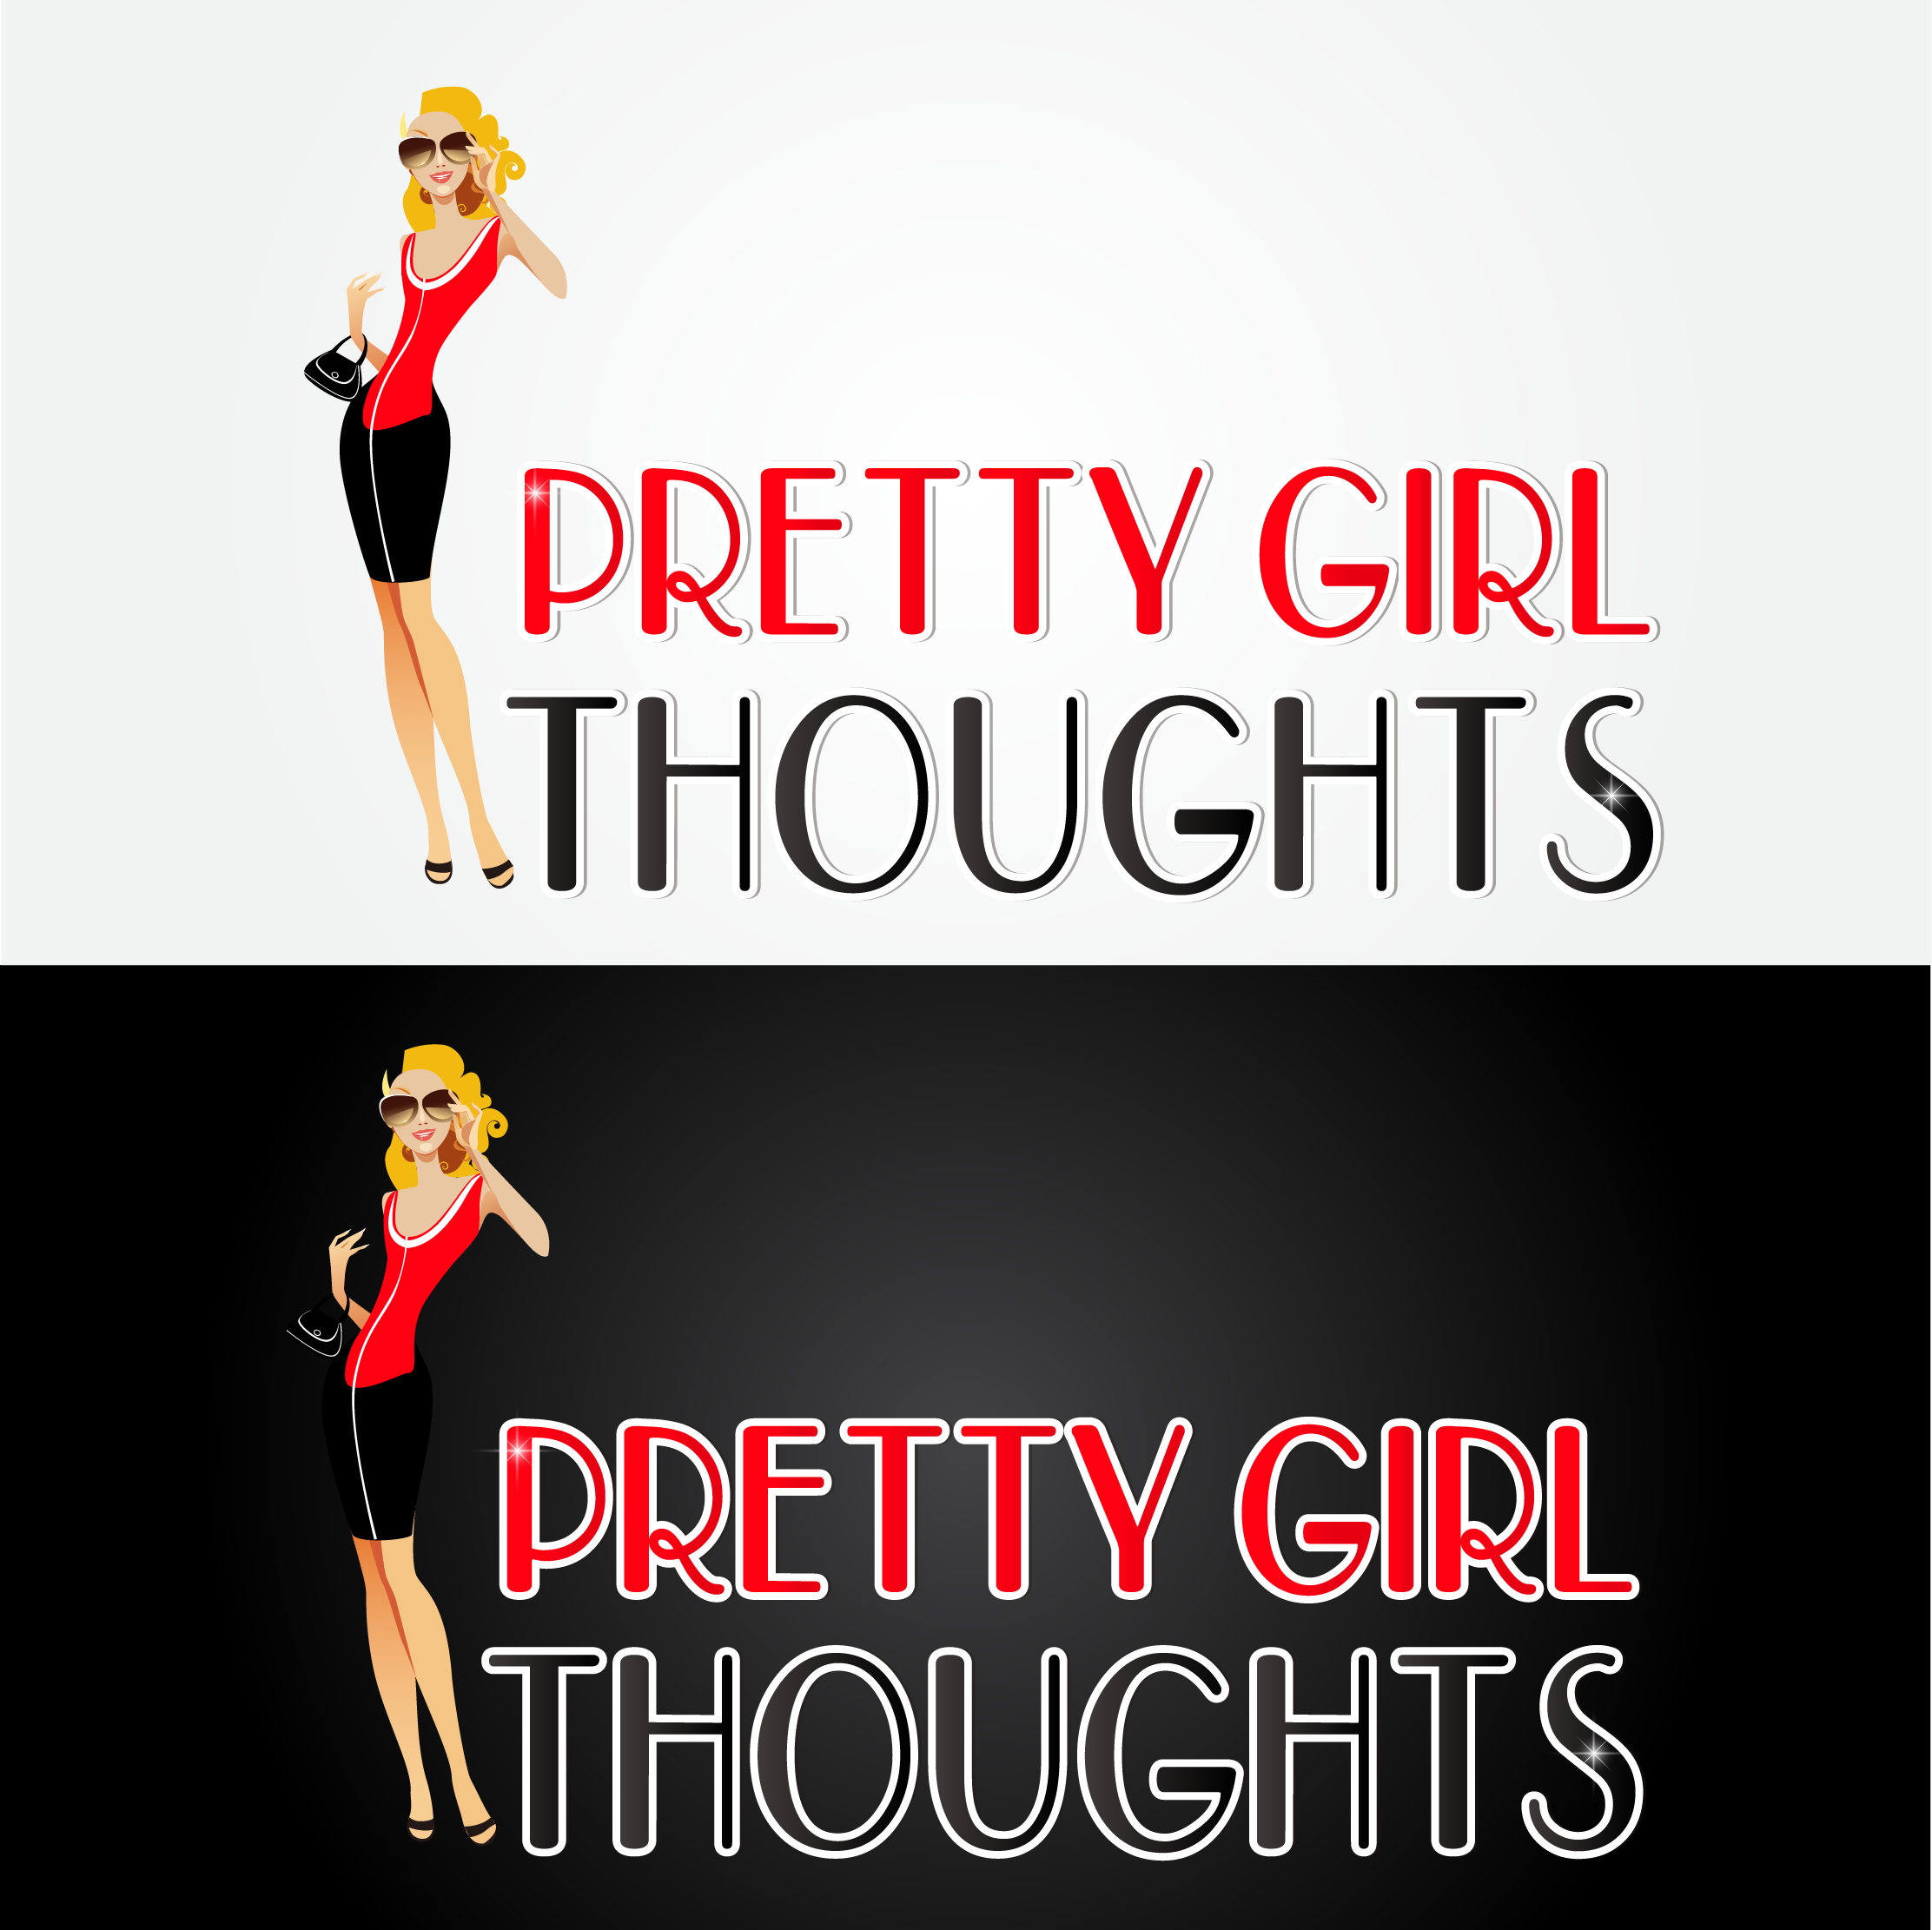 Logo Design by mediaproductionart - Entry No. 55 in the Logo Design Contest Inspiring Logo Design for Pretty Girl Thoughts.